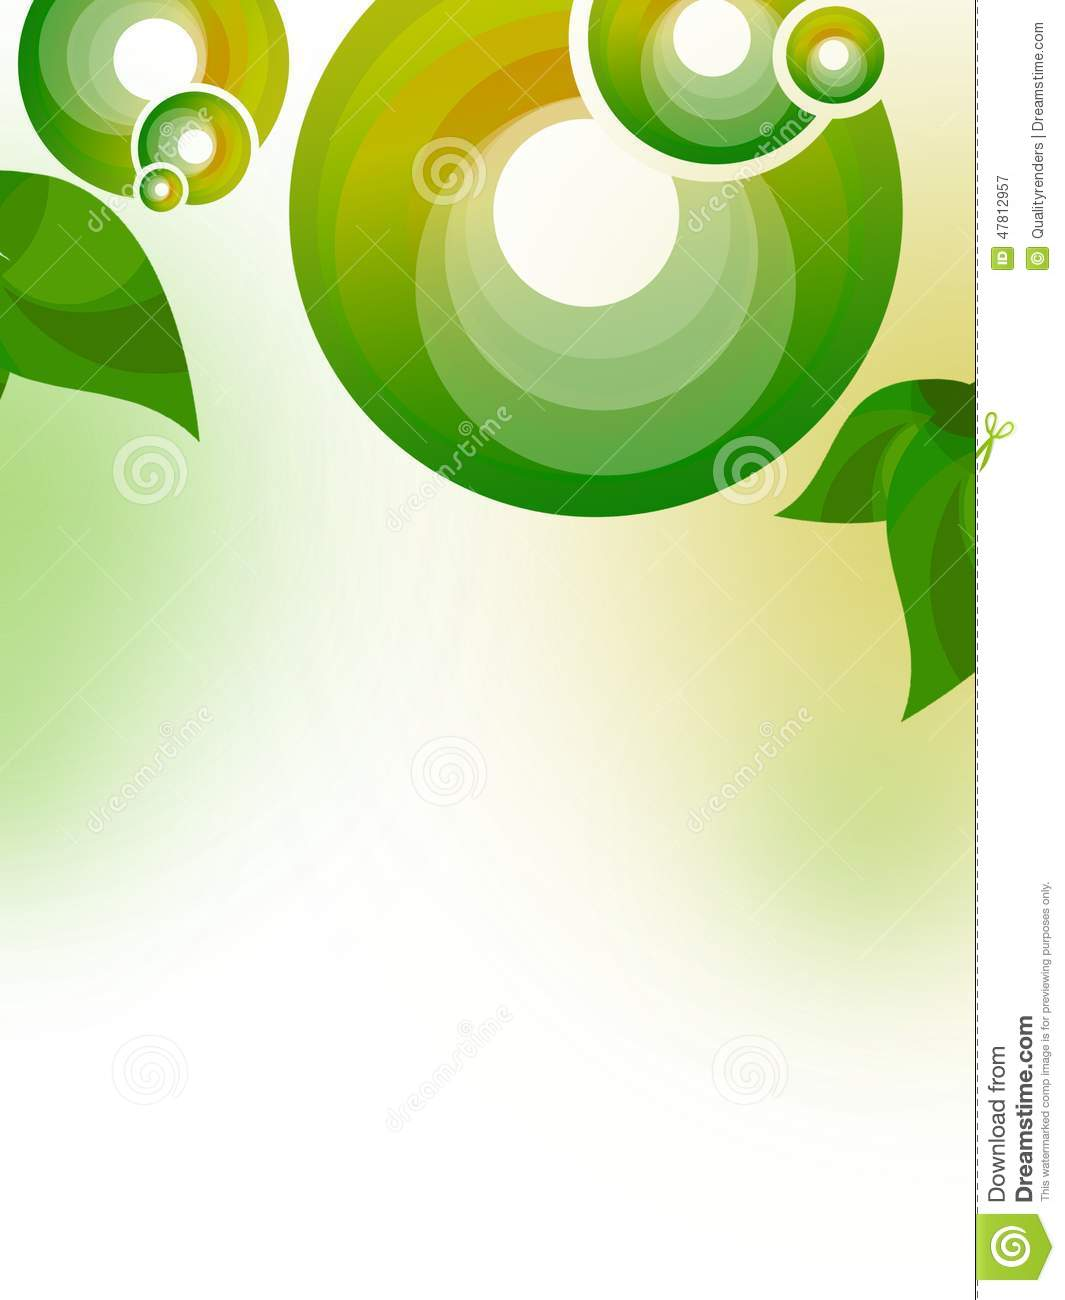 green flyer backgrounds - photo #22